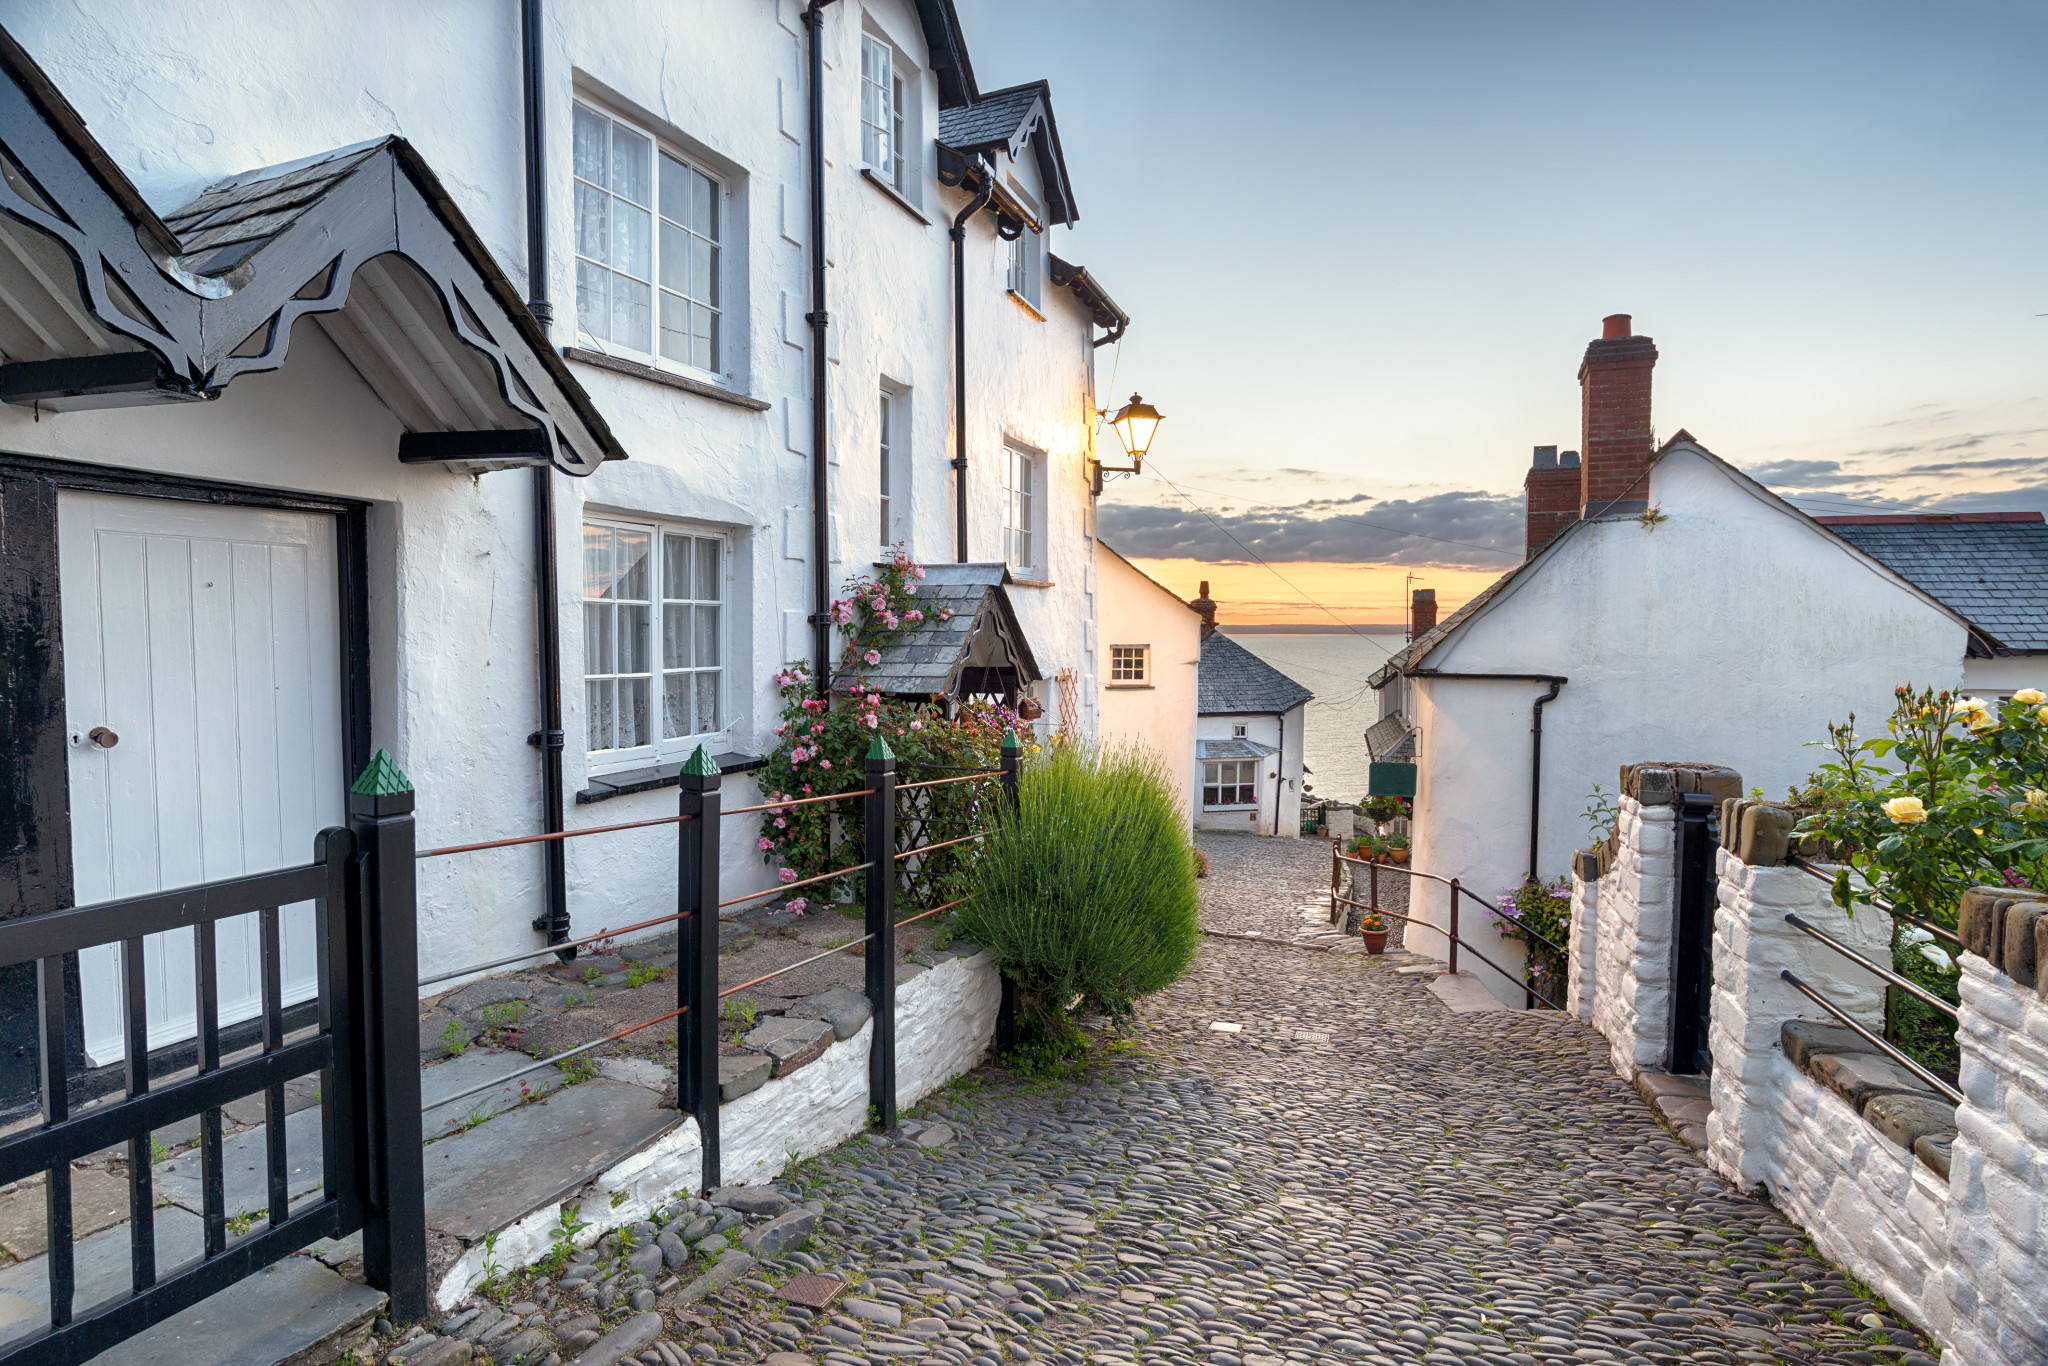 The Most Romantic Streets in the UK